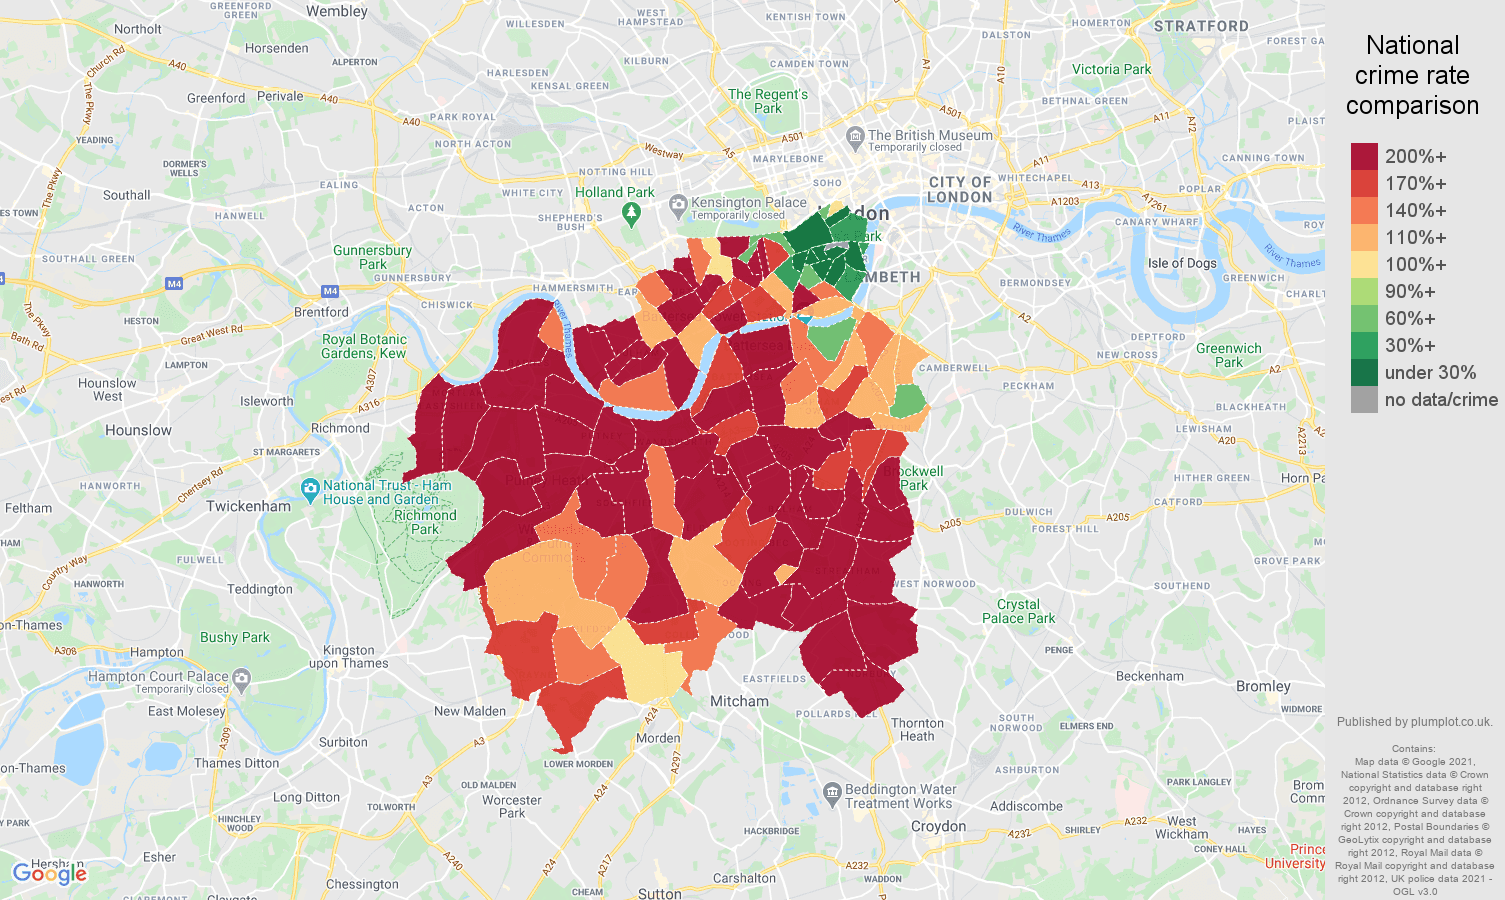 South West London vehicle crime rate comparison map